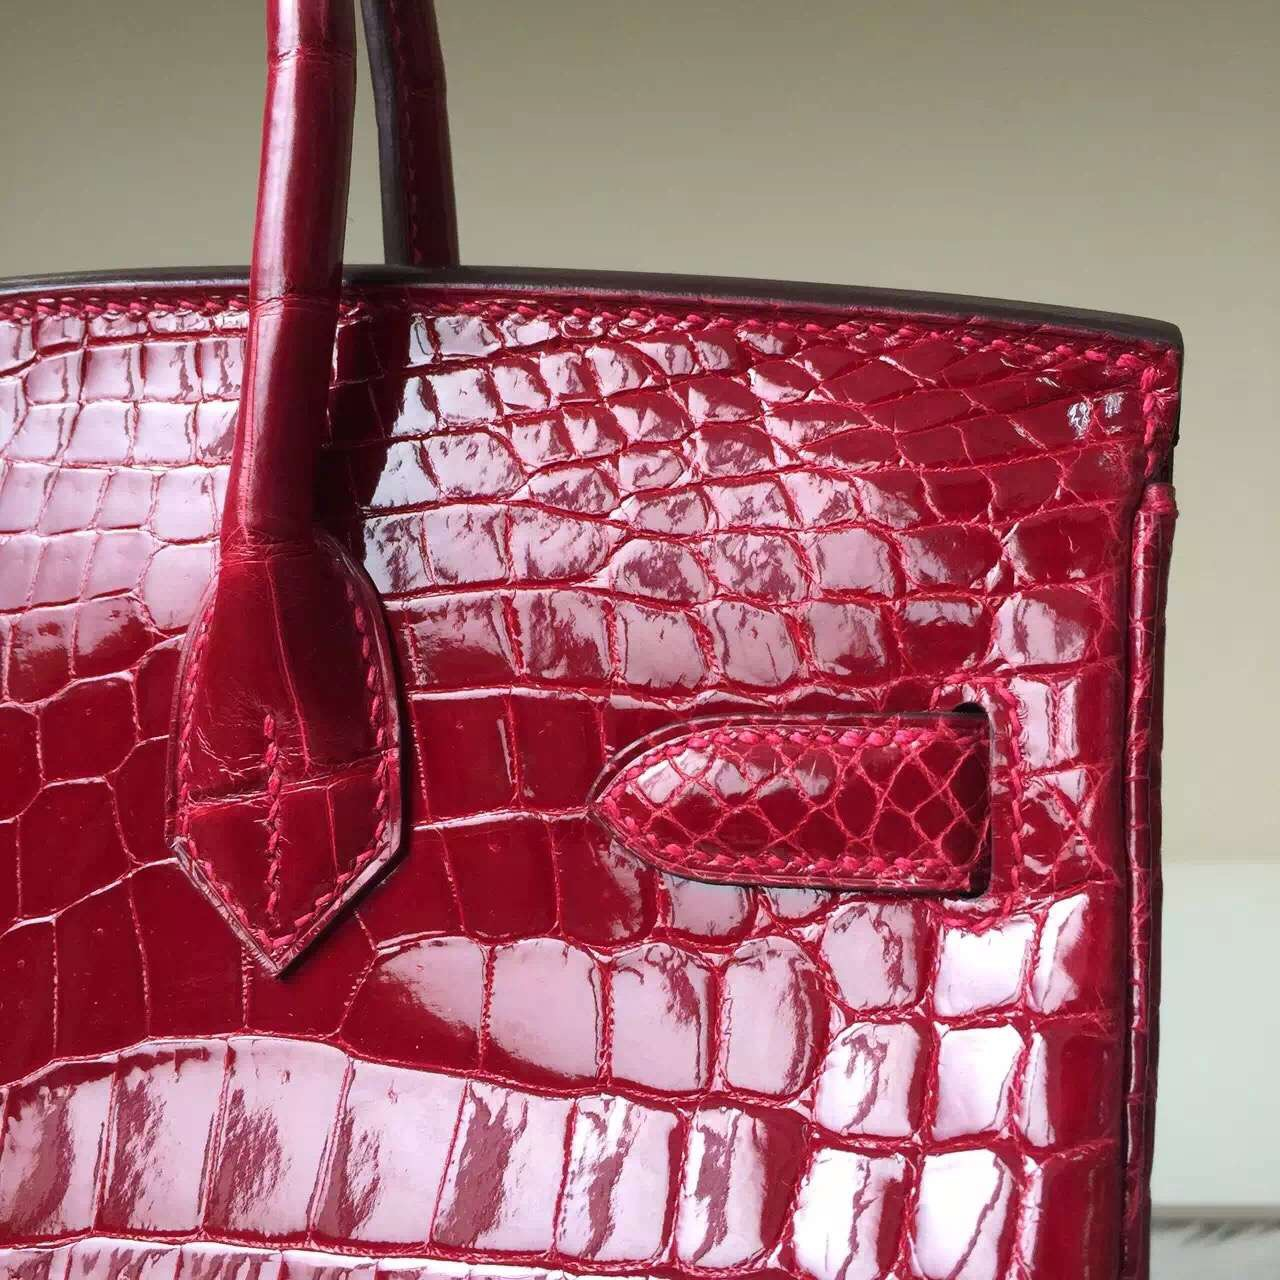 Hand Stitching Hermes Birkin30cm CK55 Hermes Red Crocodile Shiny Leather